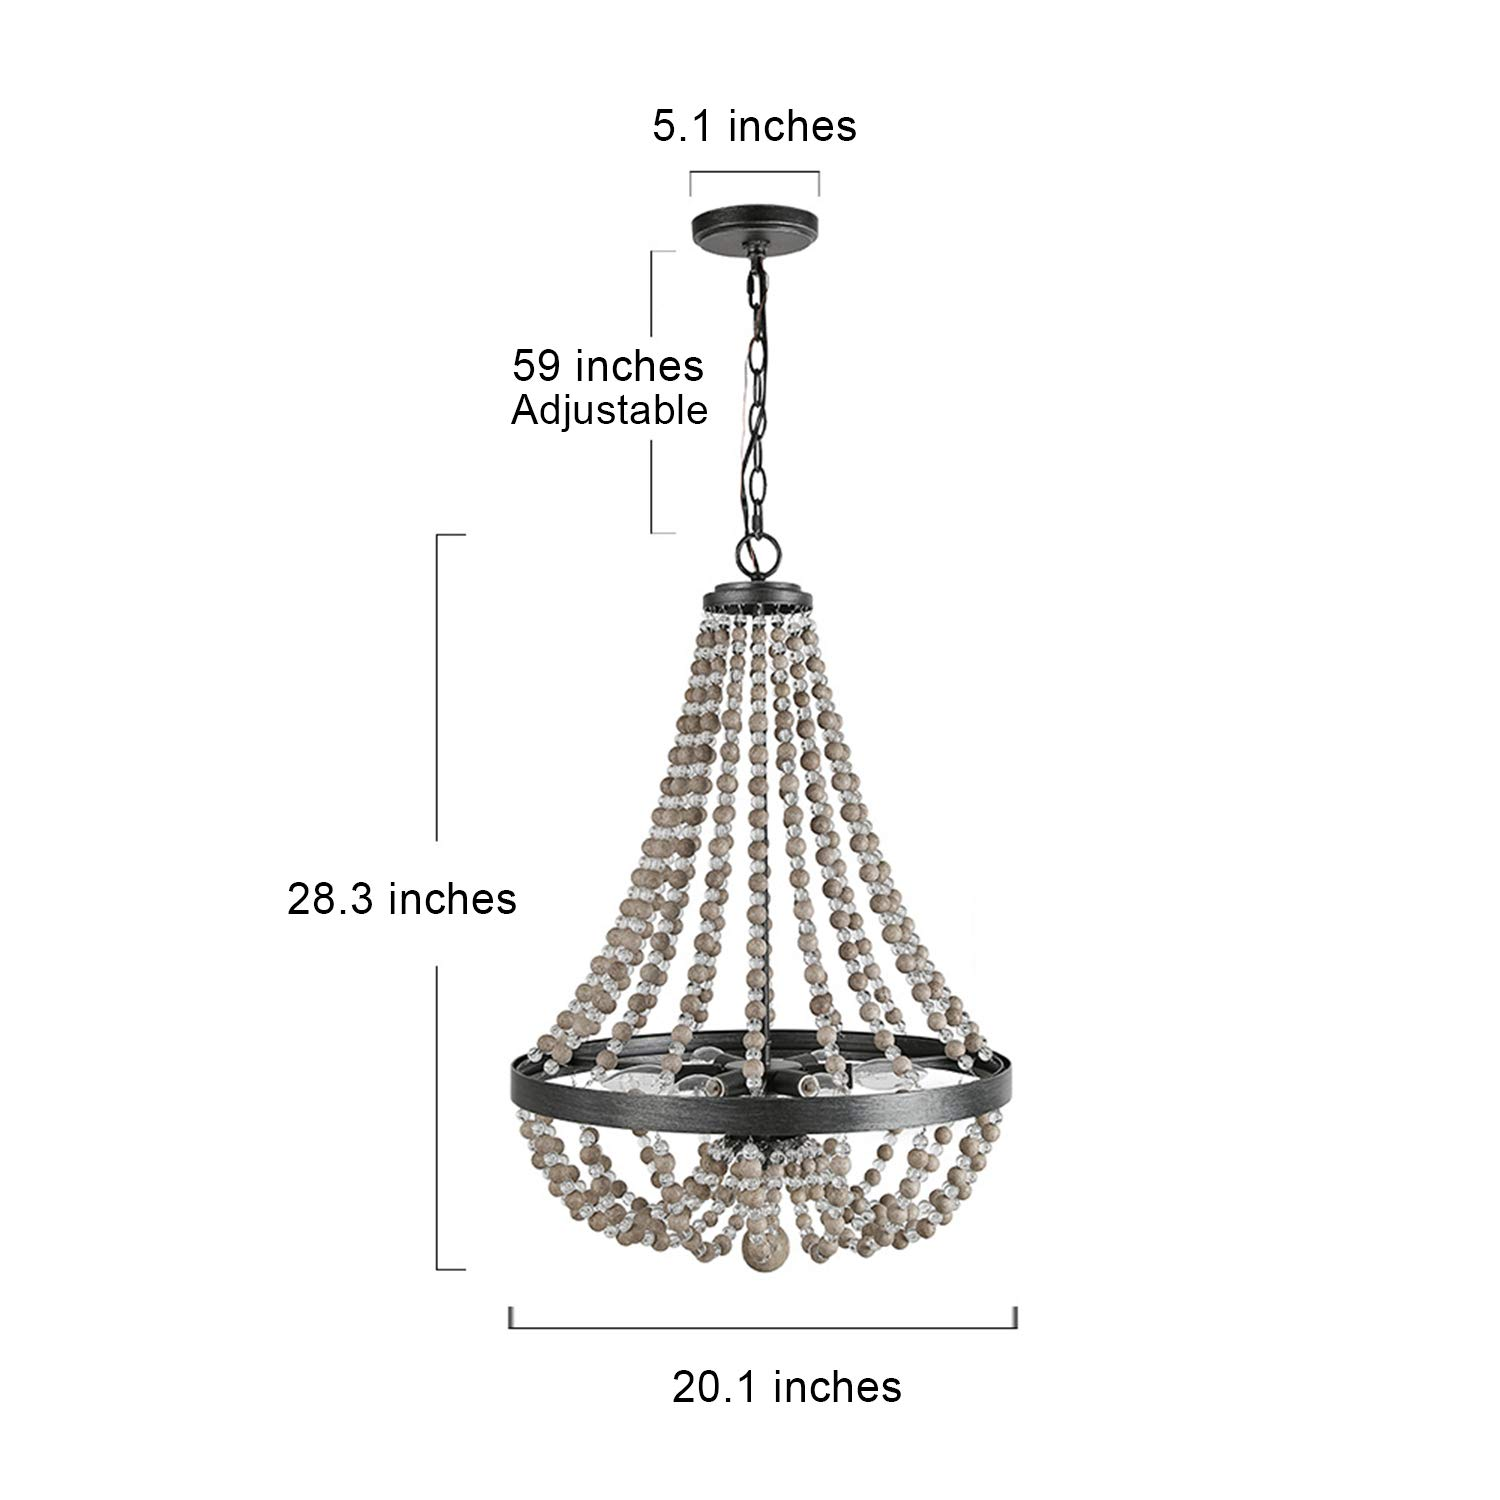 LALUZ 6-Light Wood Bead Empire Chandelier, Pendant Lighting Fixture for Kitchen Island, Natural Wood Beads, 28.3''H x 20.1''W by LALUZ (Image #3)